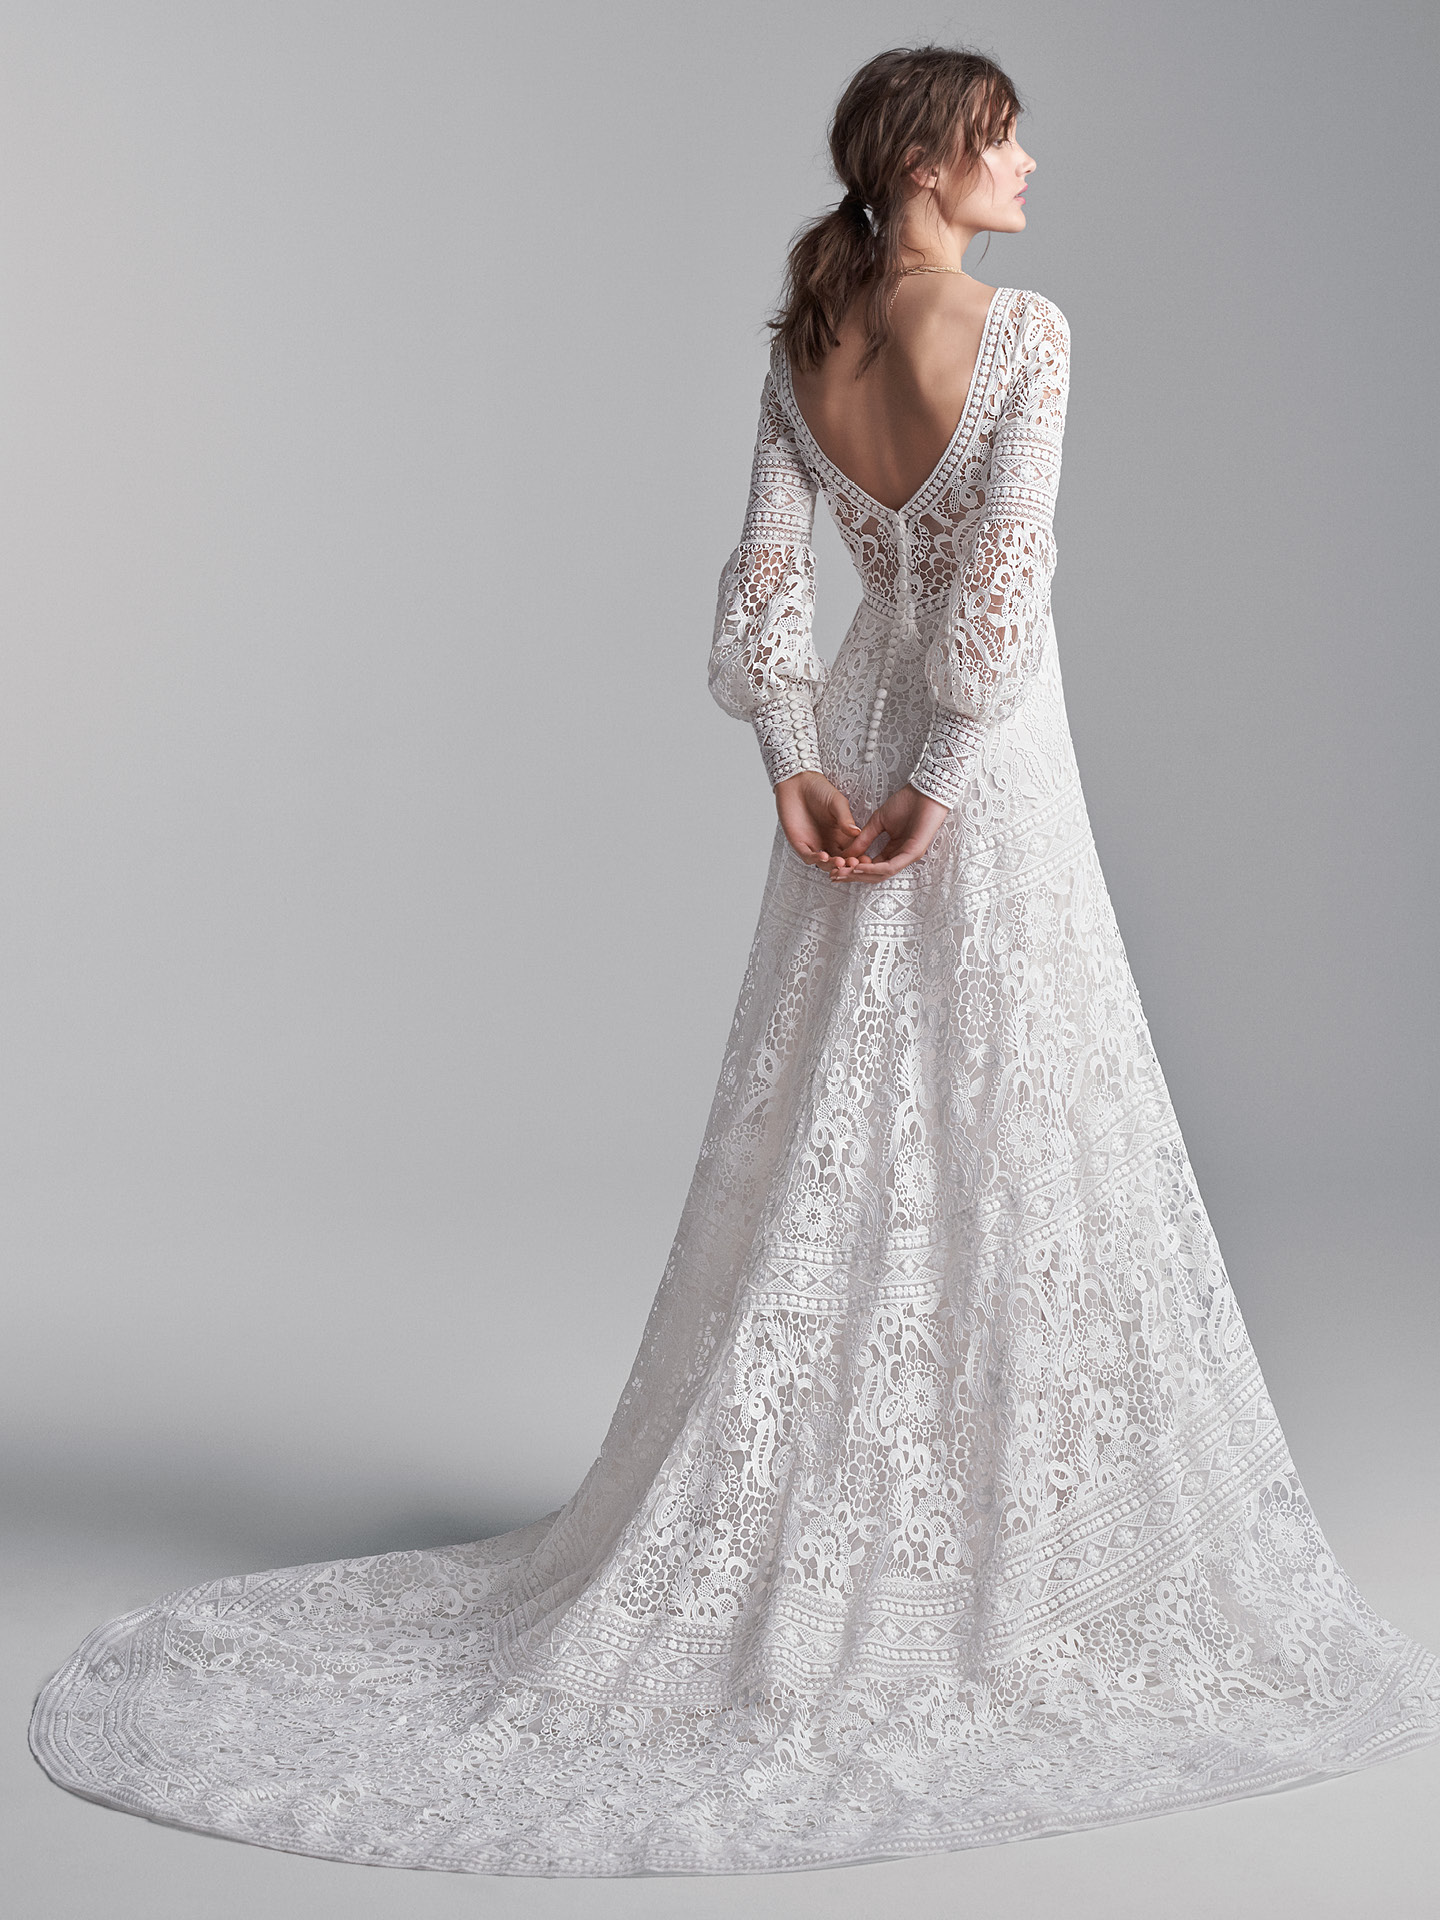 Model From Back Wearing Lace Bishop Sleeve A-line Wedding Dress Called Finley by Sottero and Midgley